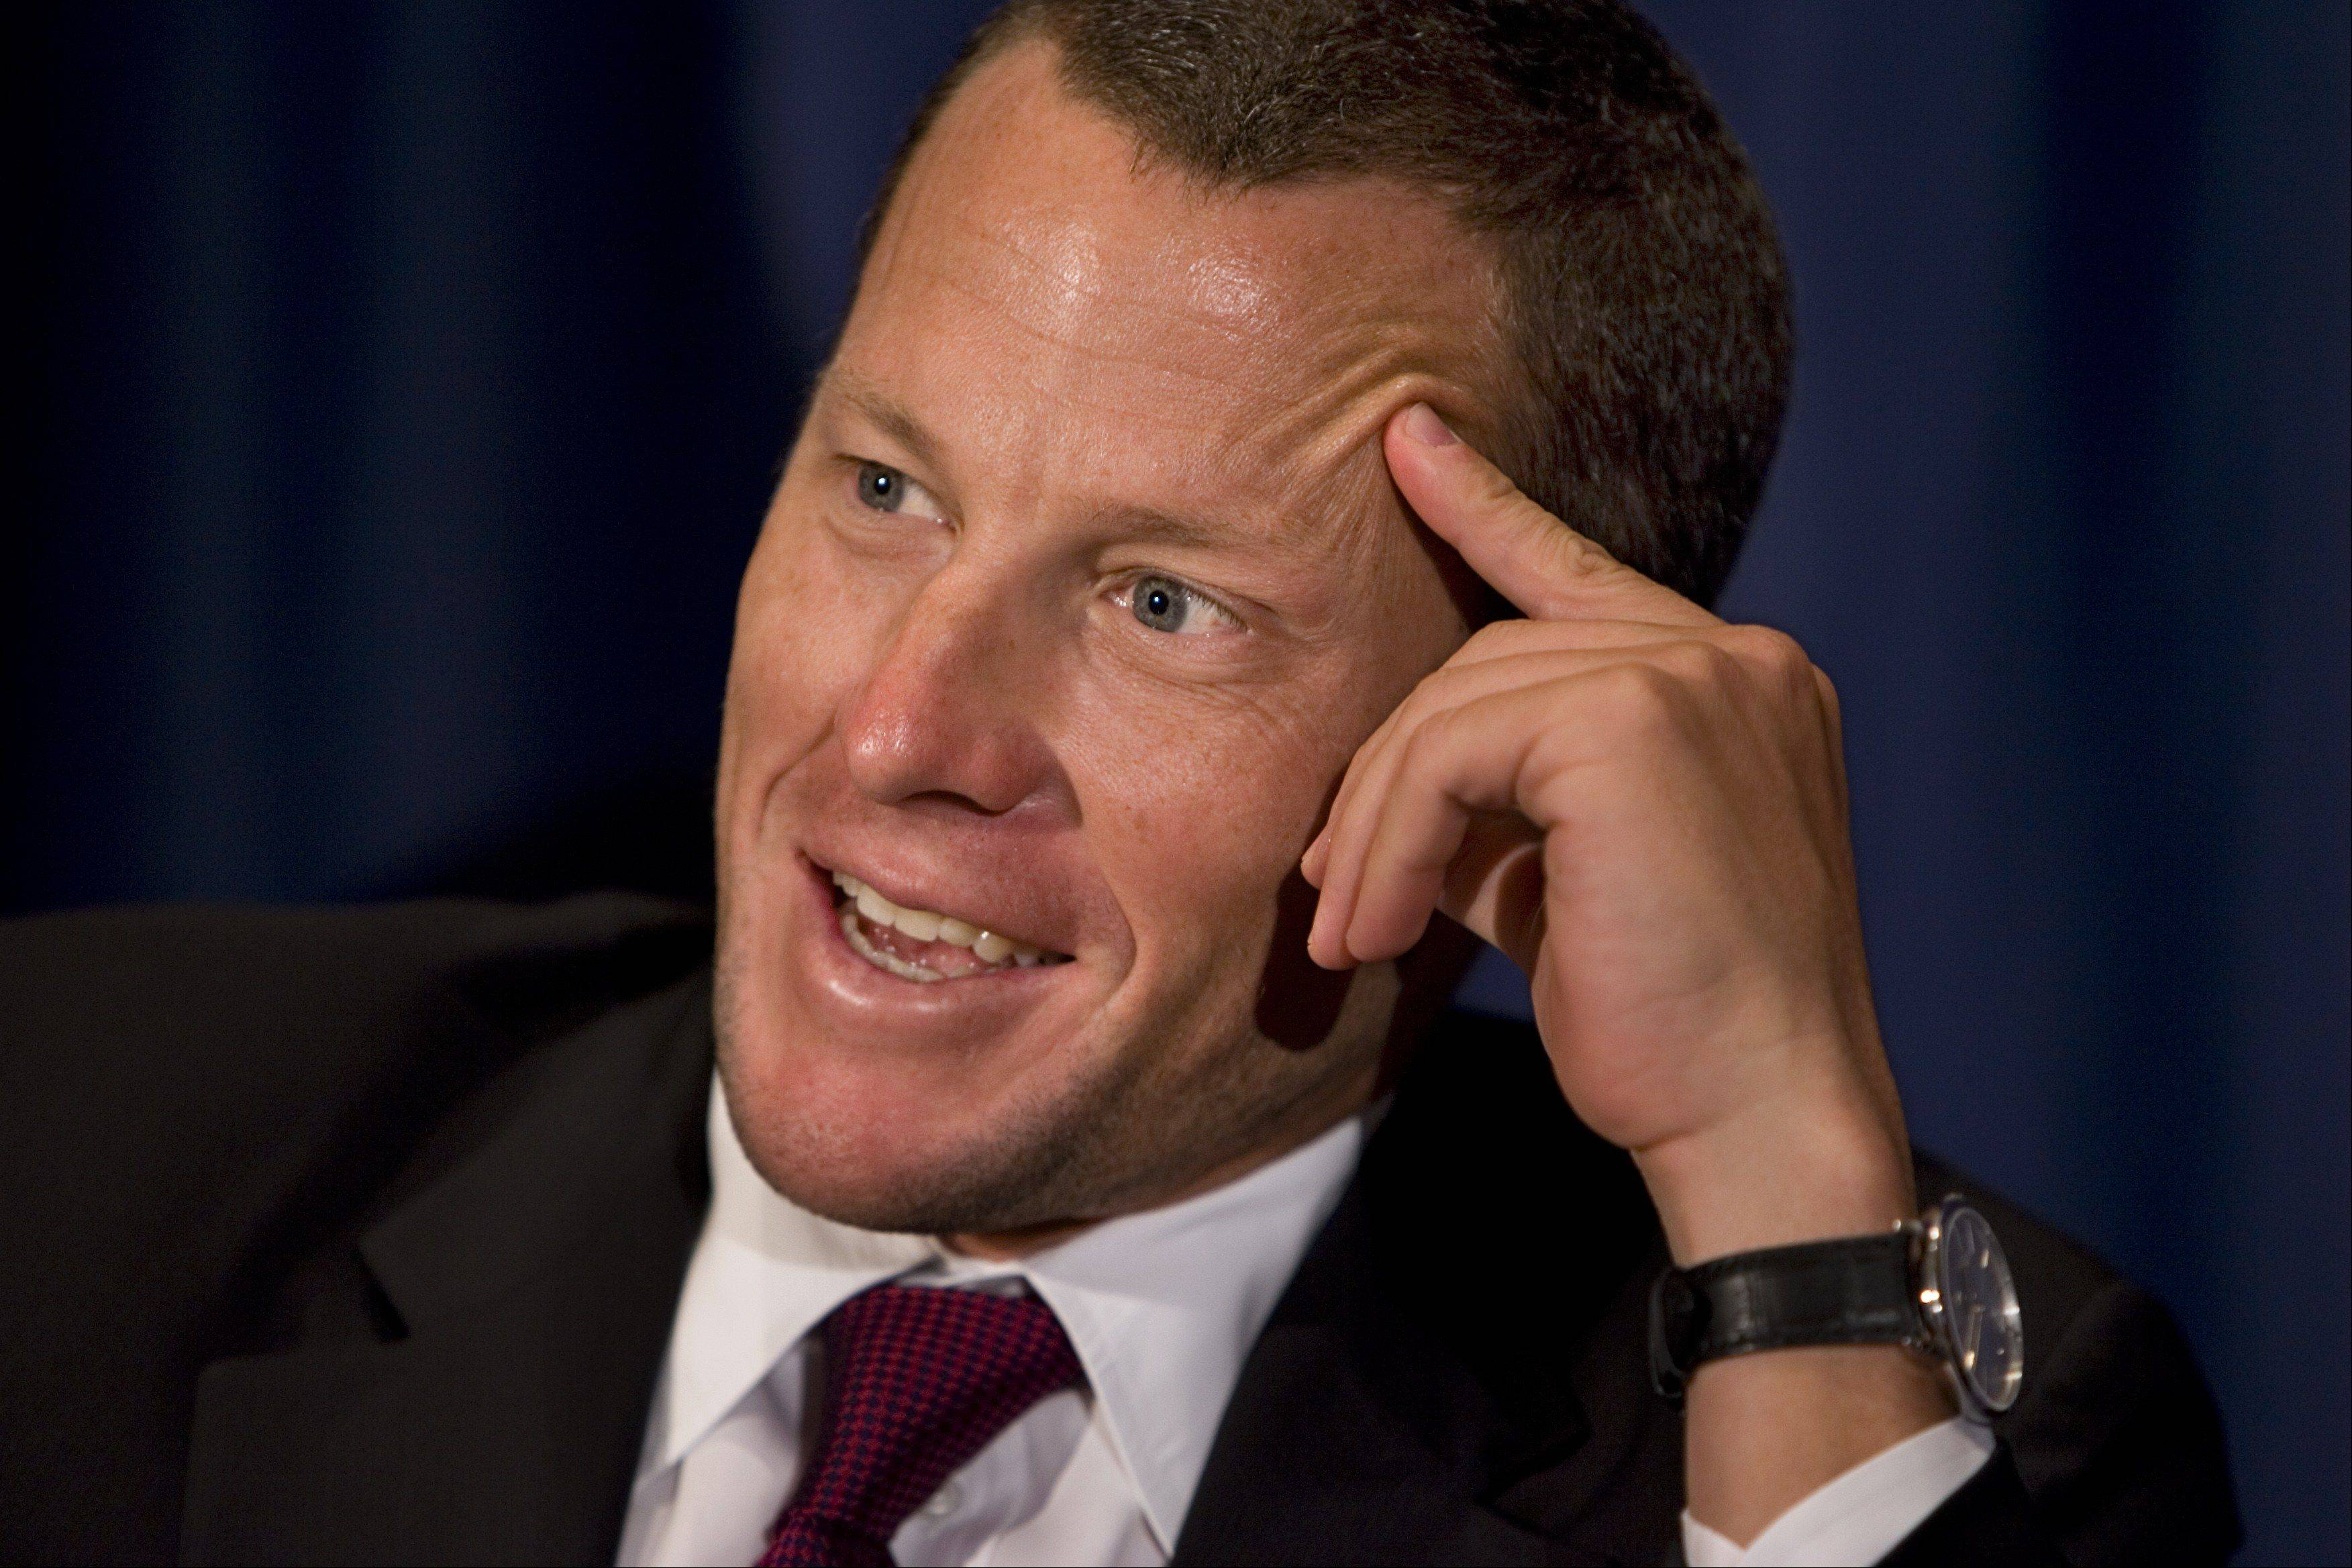 In this July 23, 2008 file photo, Lance Armstrong hosts a news conference at the National Press Club in Washington. Lance Armstrong will end his retirement and hopes to compete in the 2009 Tour de France, according to a cycling journal report. The 36-year-old seven-time Tour de France champion will compete in five road races with the Astana team in 2009, the cycling journal VeloNews reported on its Web site Monday Sept. 8, 2008, citing anonymous sources.